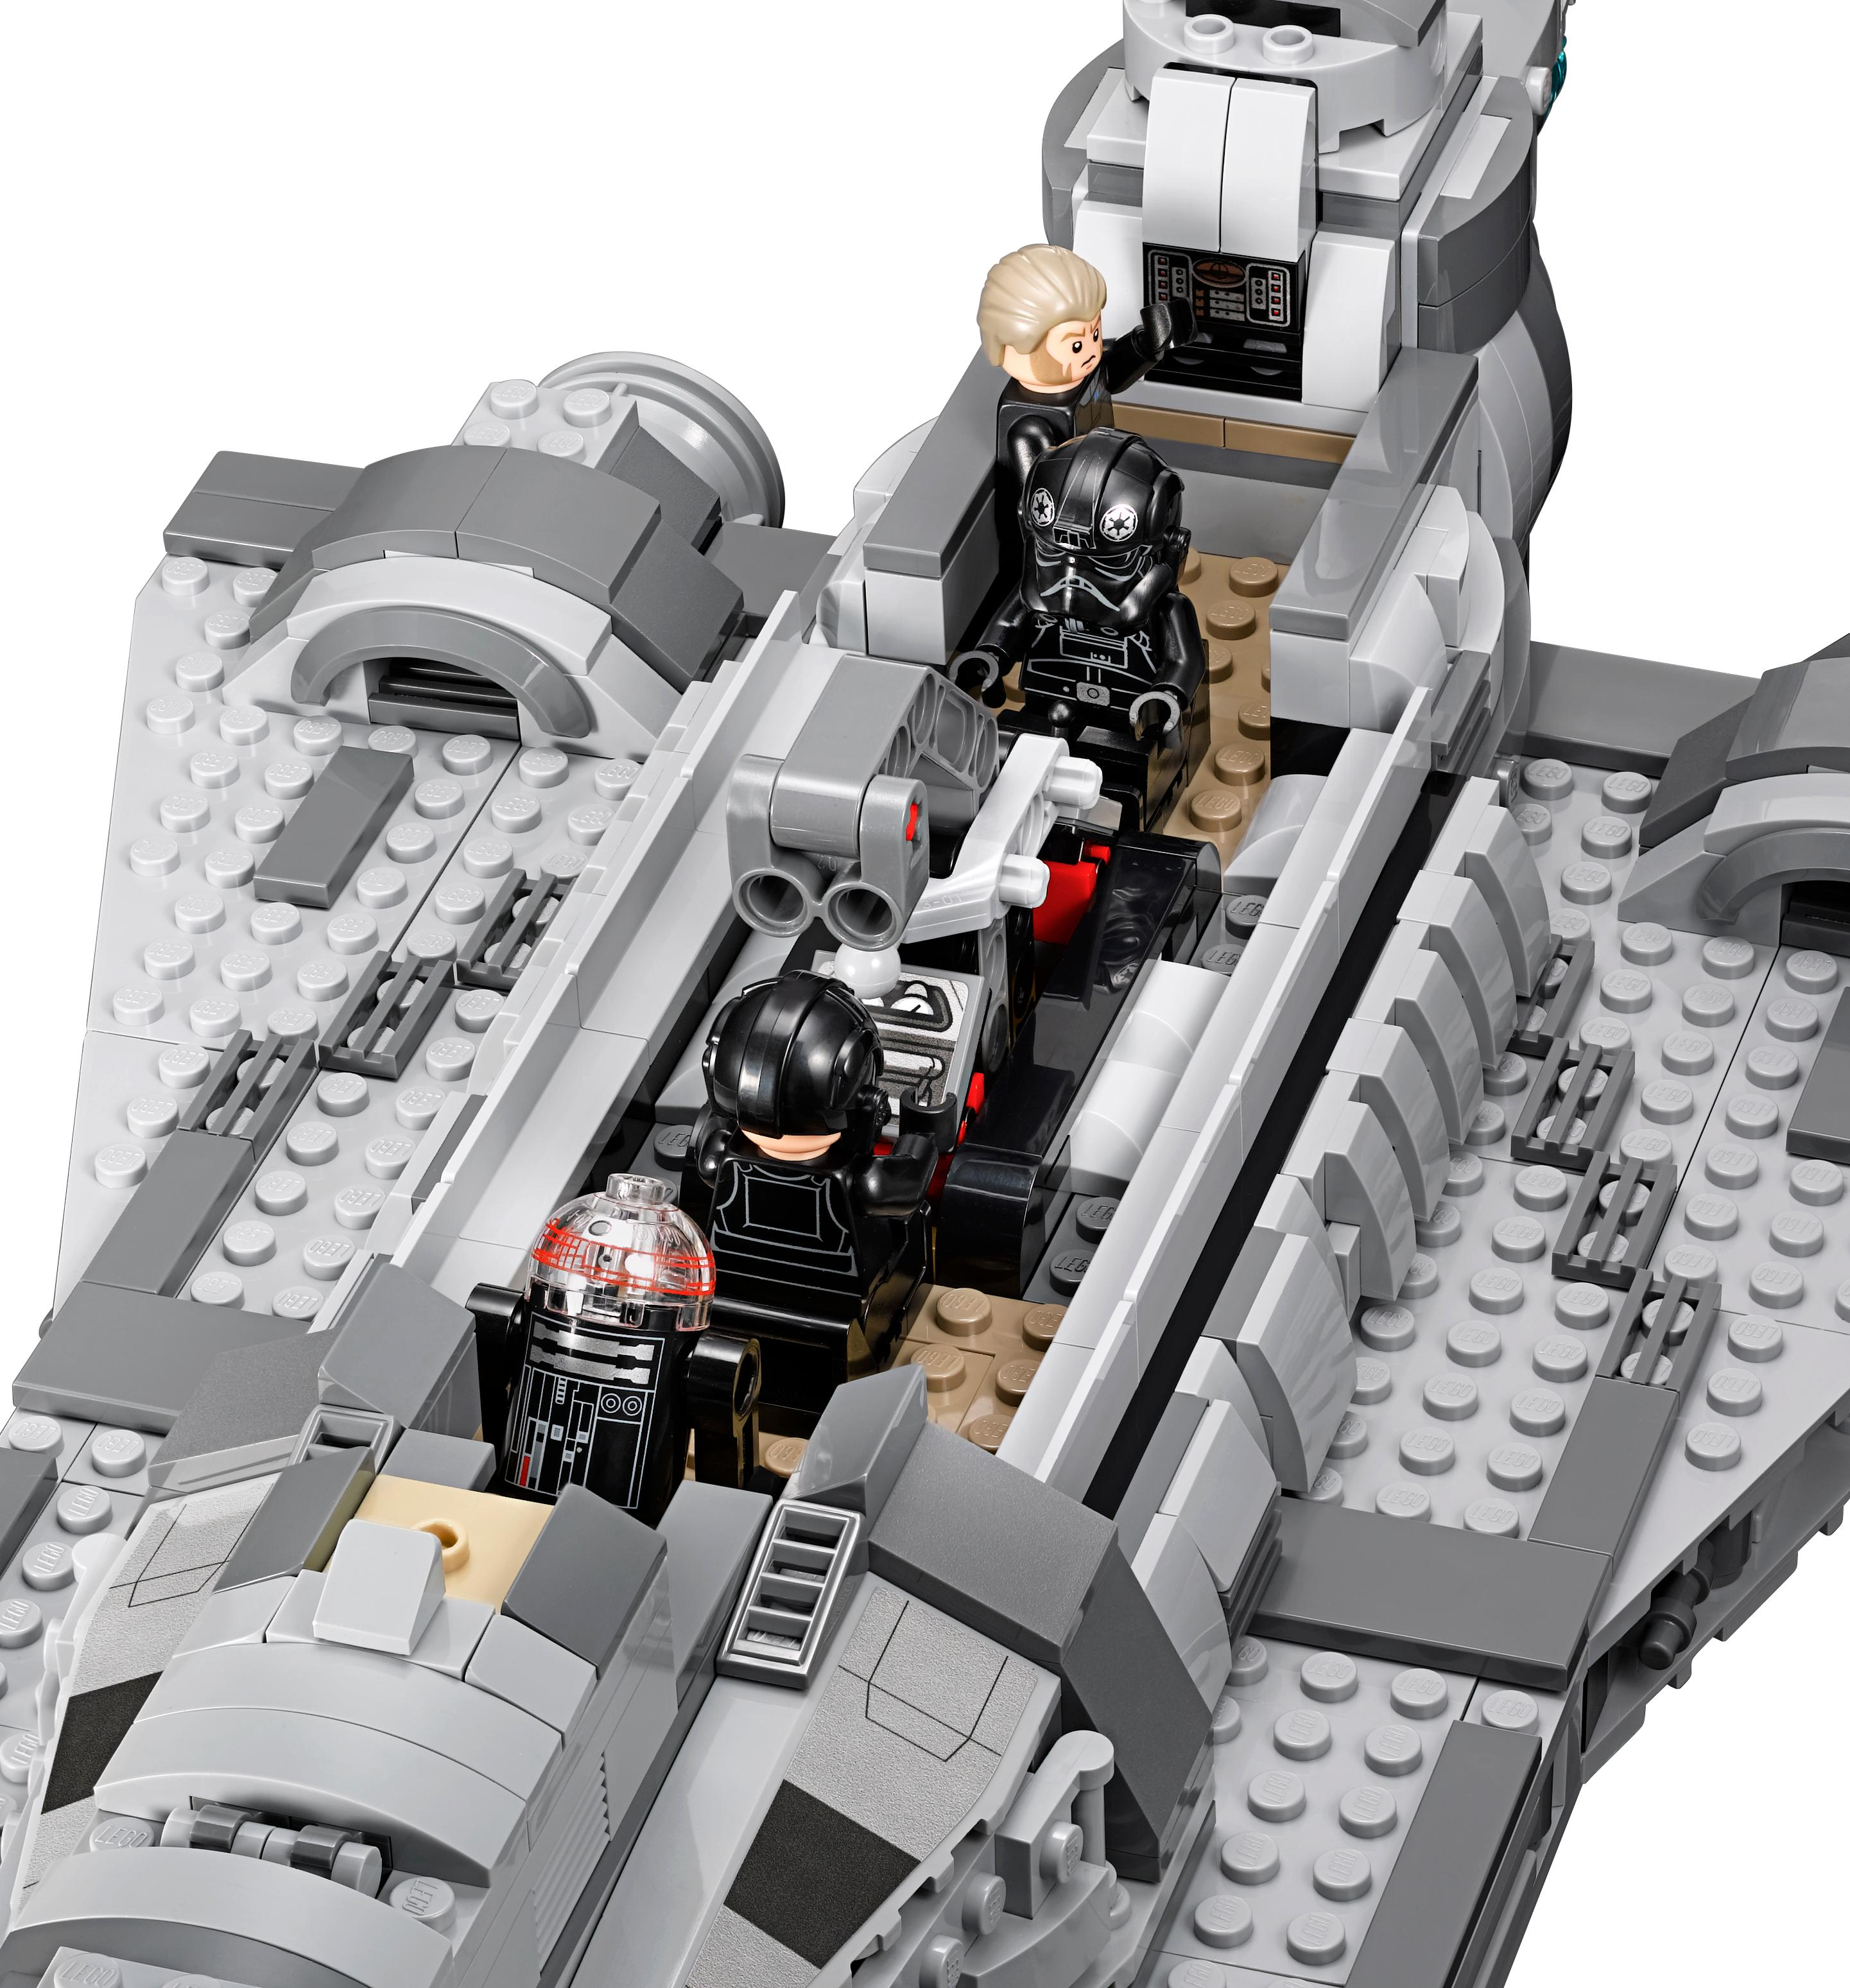 Amazon.com: LEGO Star Wars Imperial Assault Carrier 75106 Building Kit